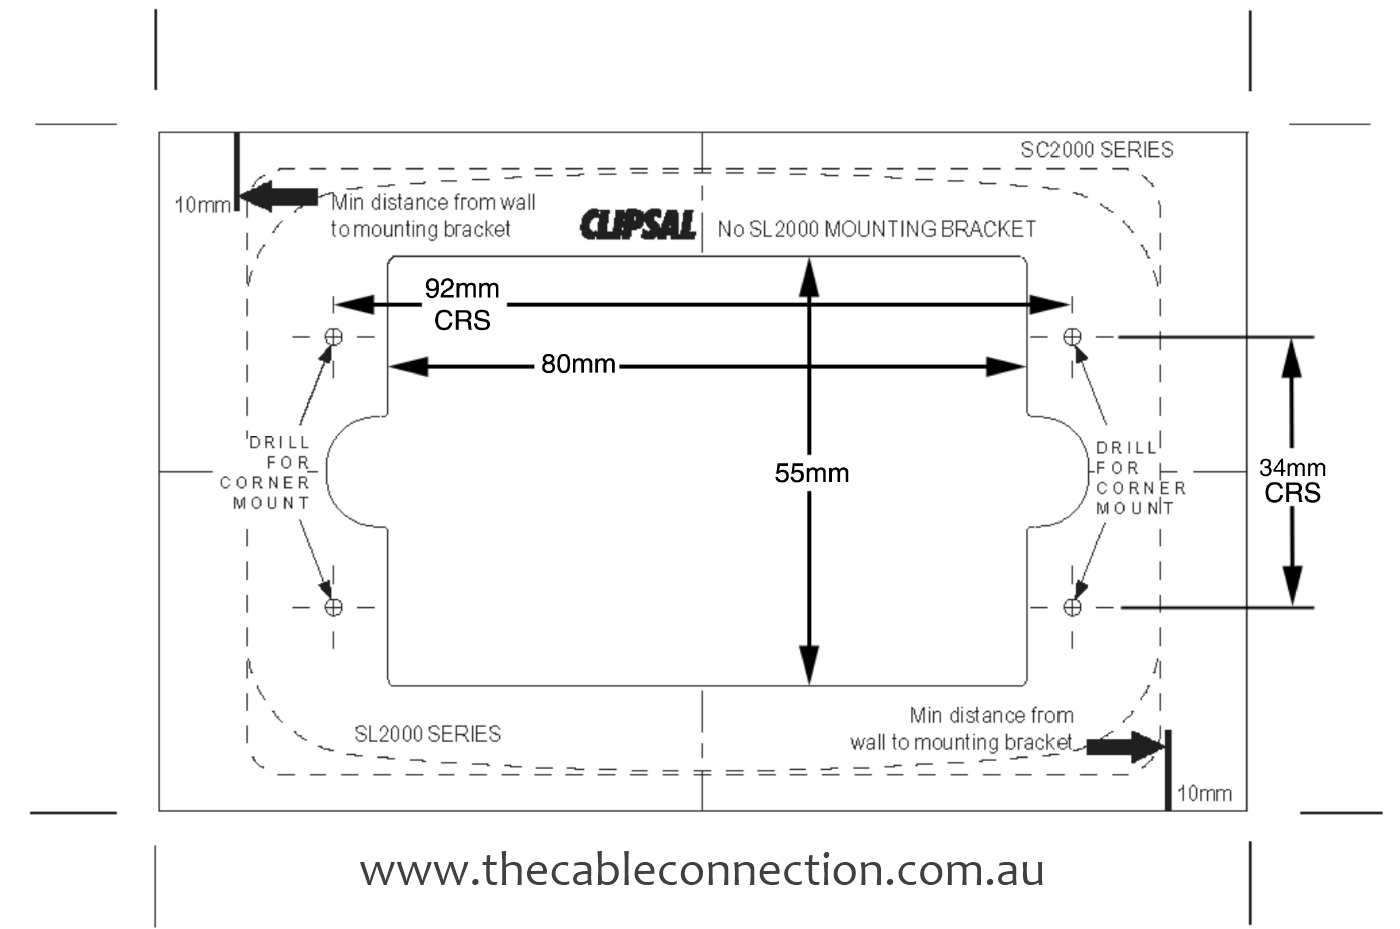 The Cable Connection How To Mounting Template For A